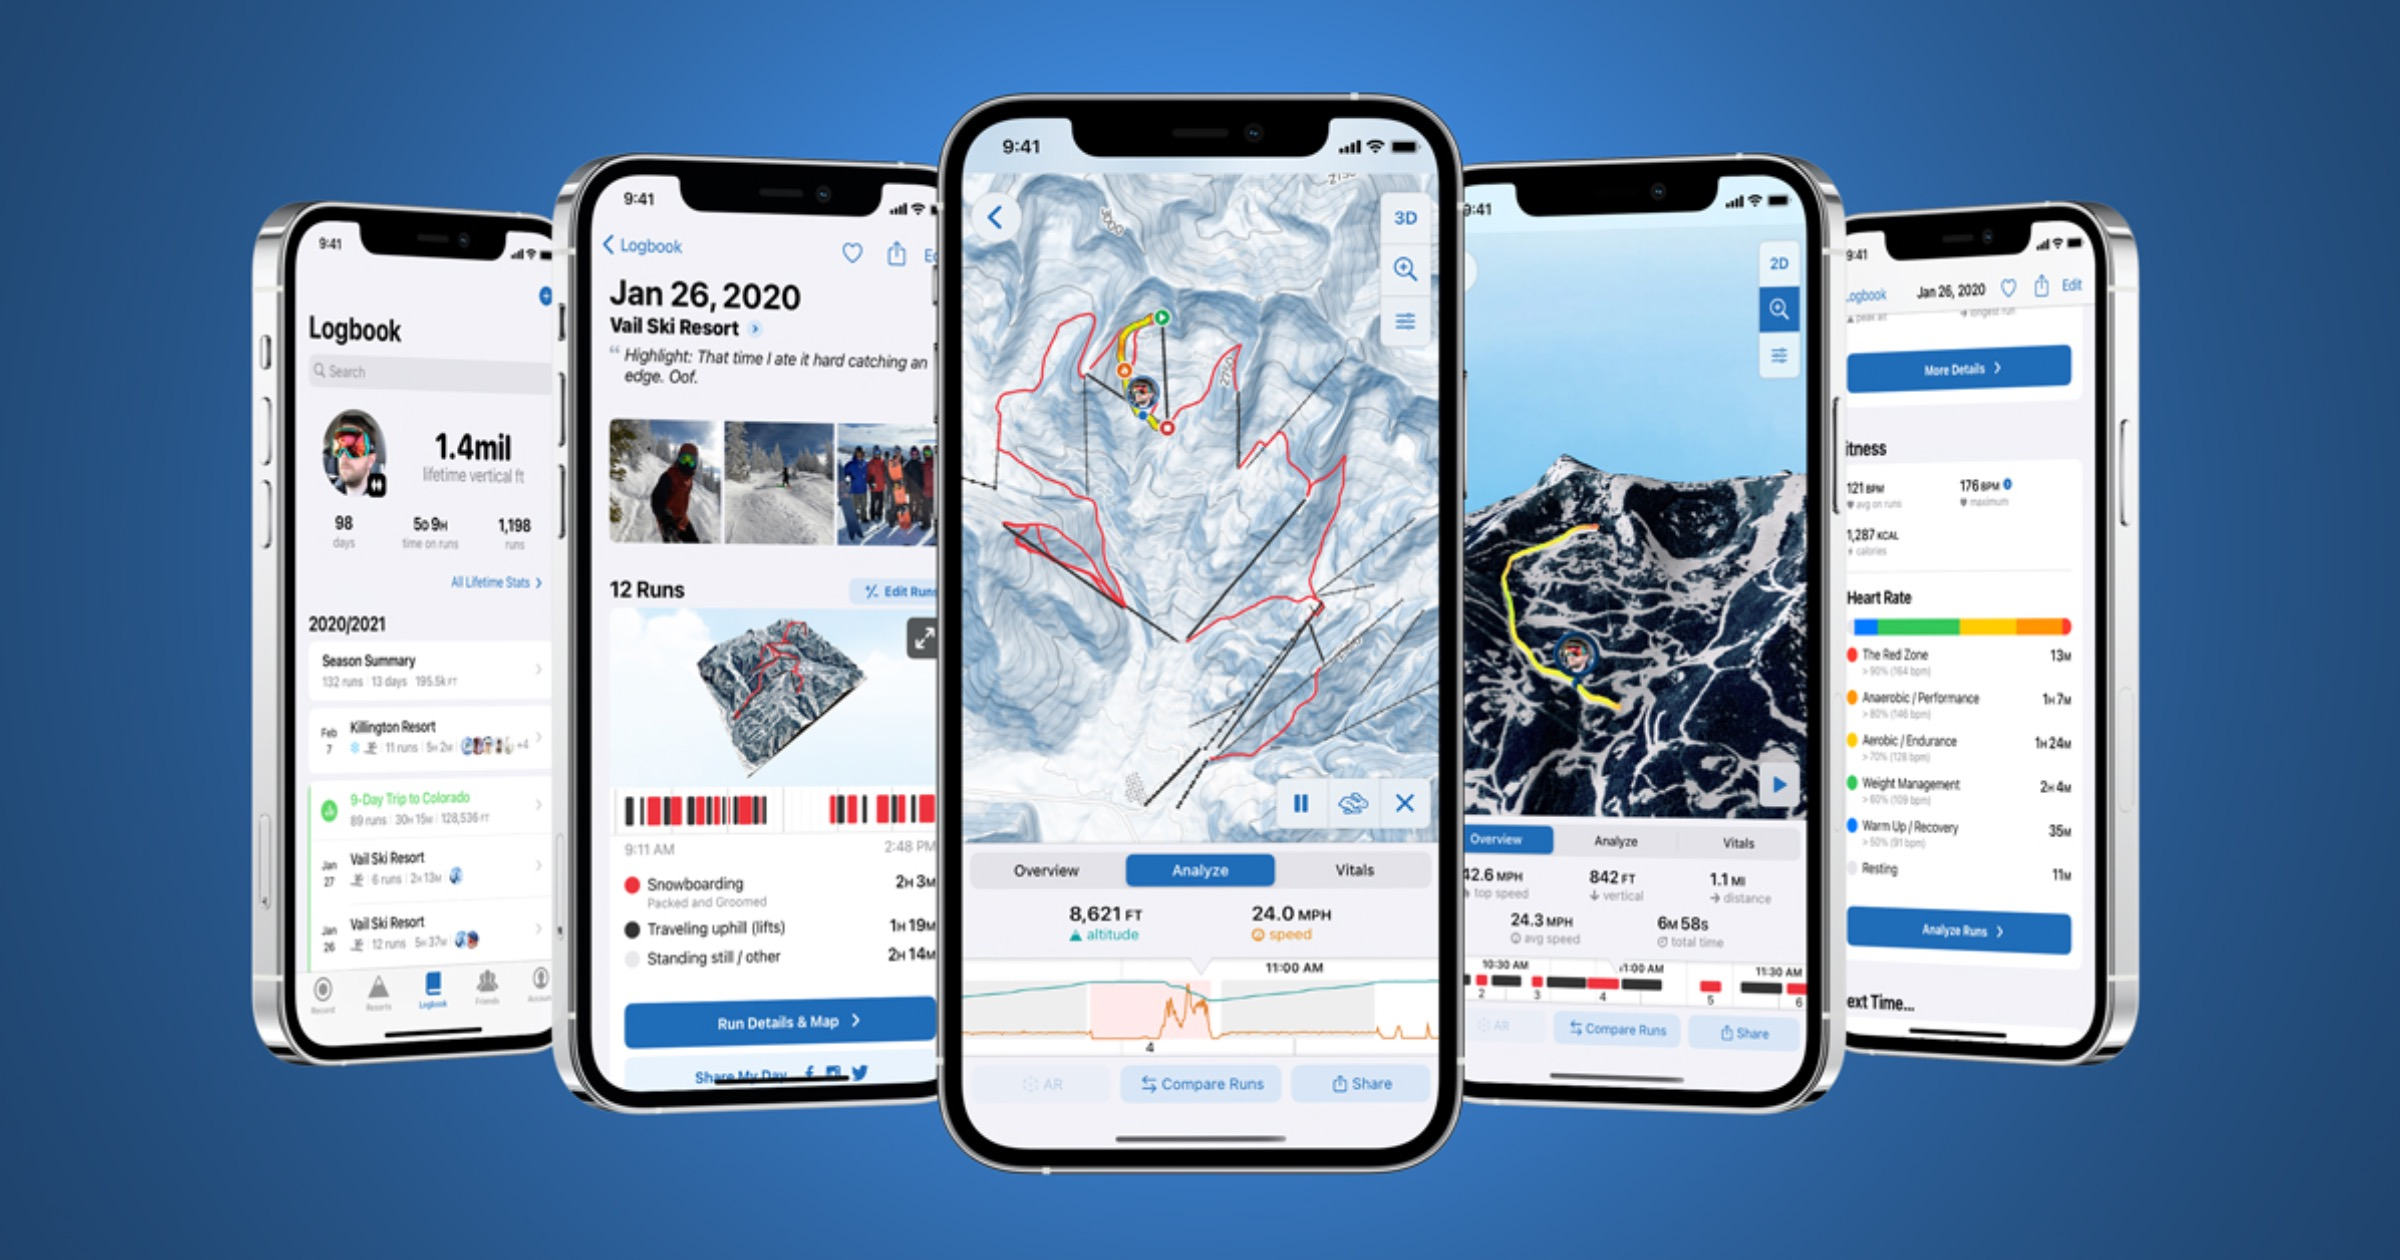 iPhone 12 models running the Slopes app.